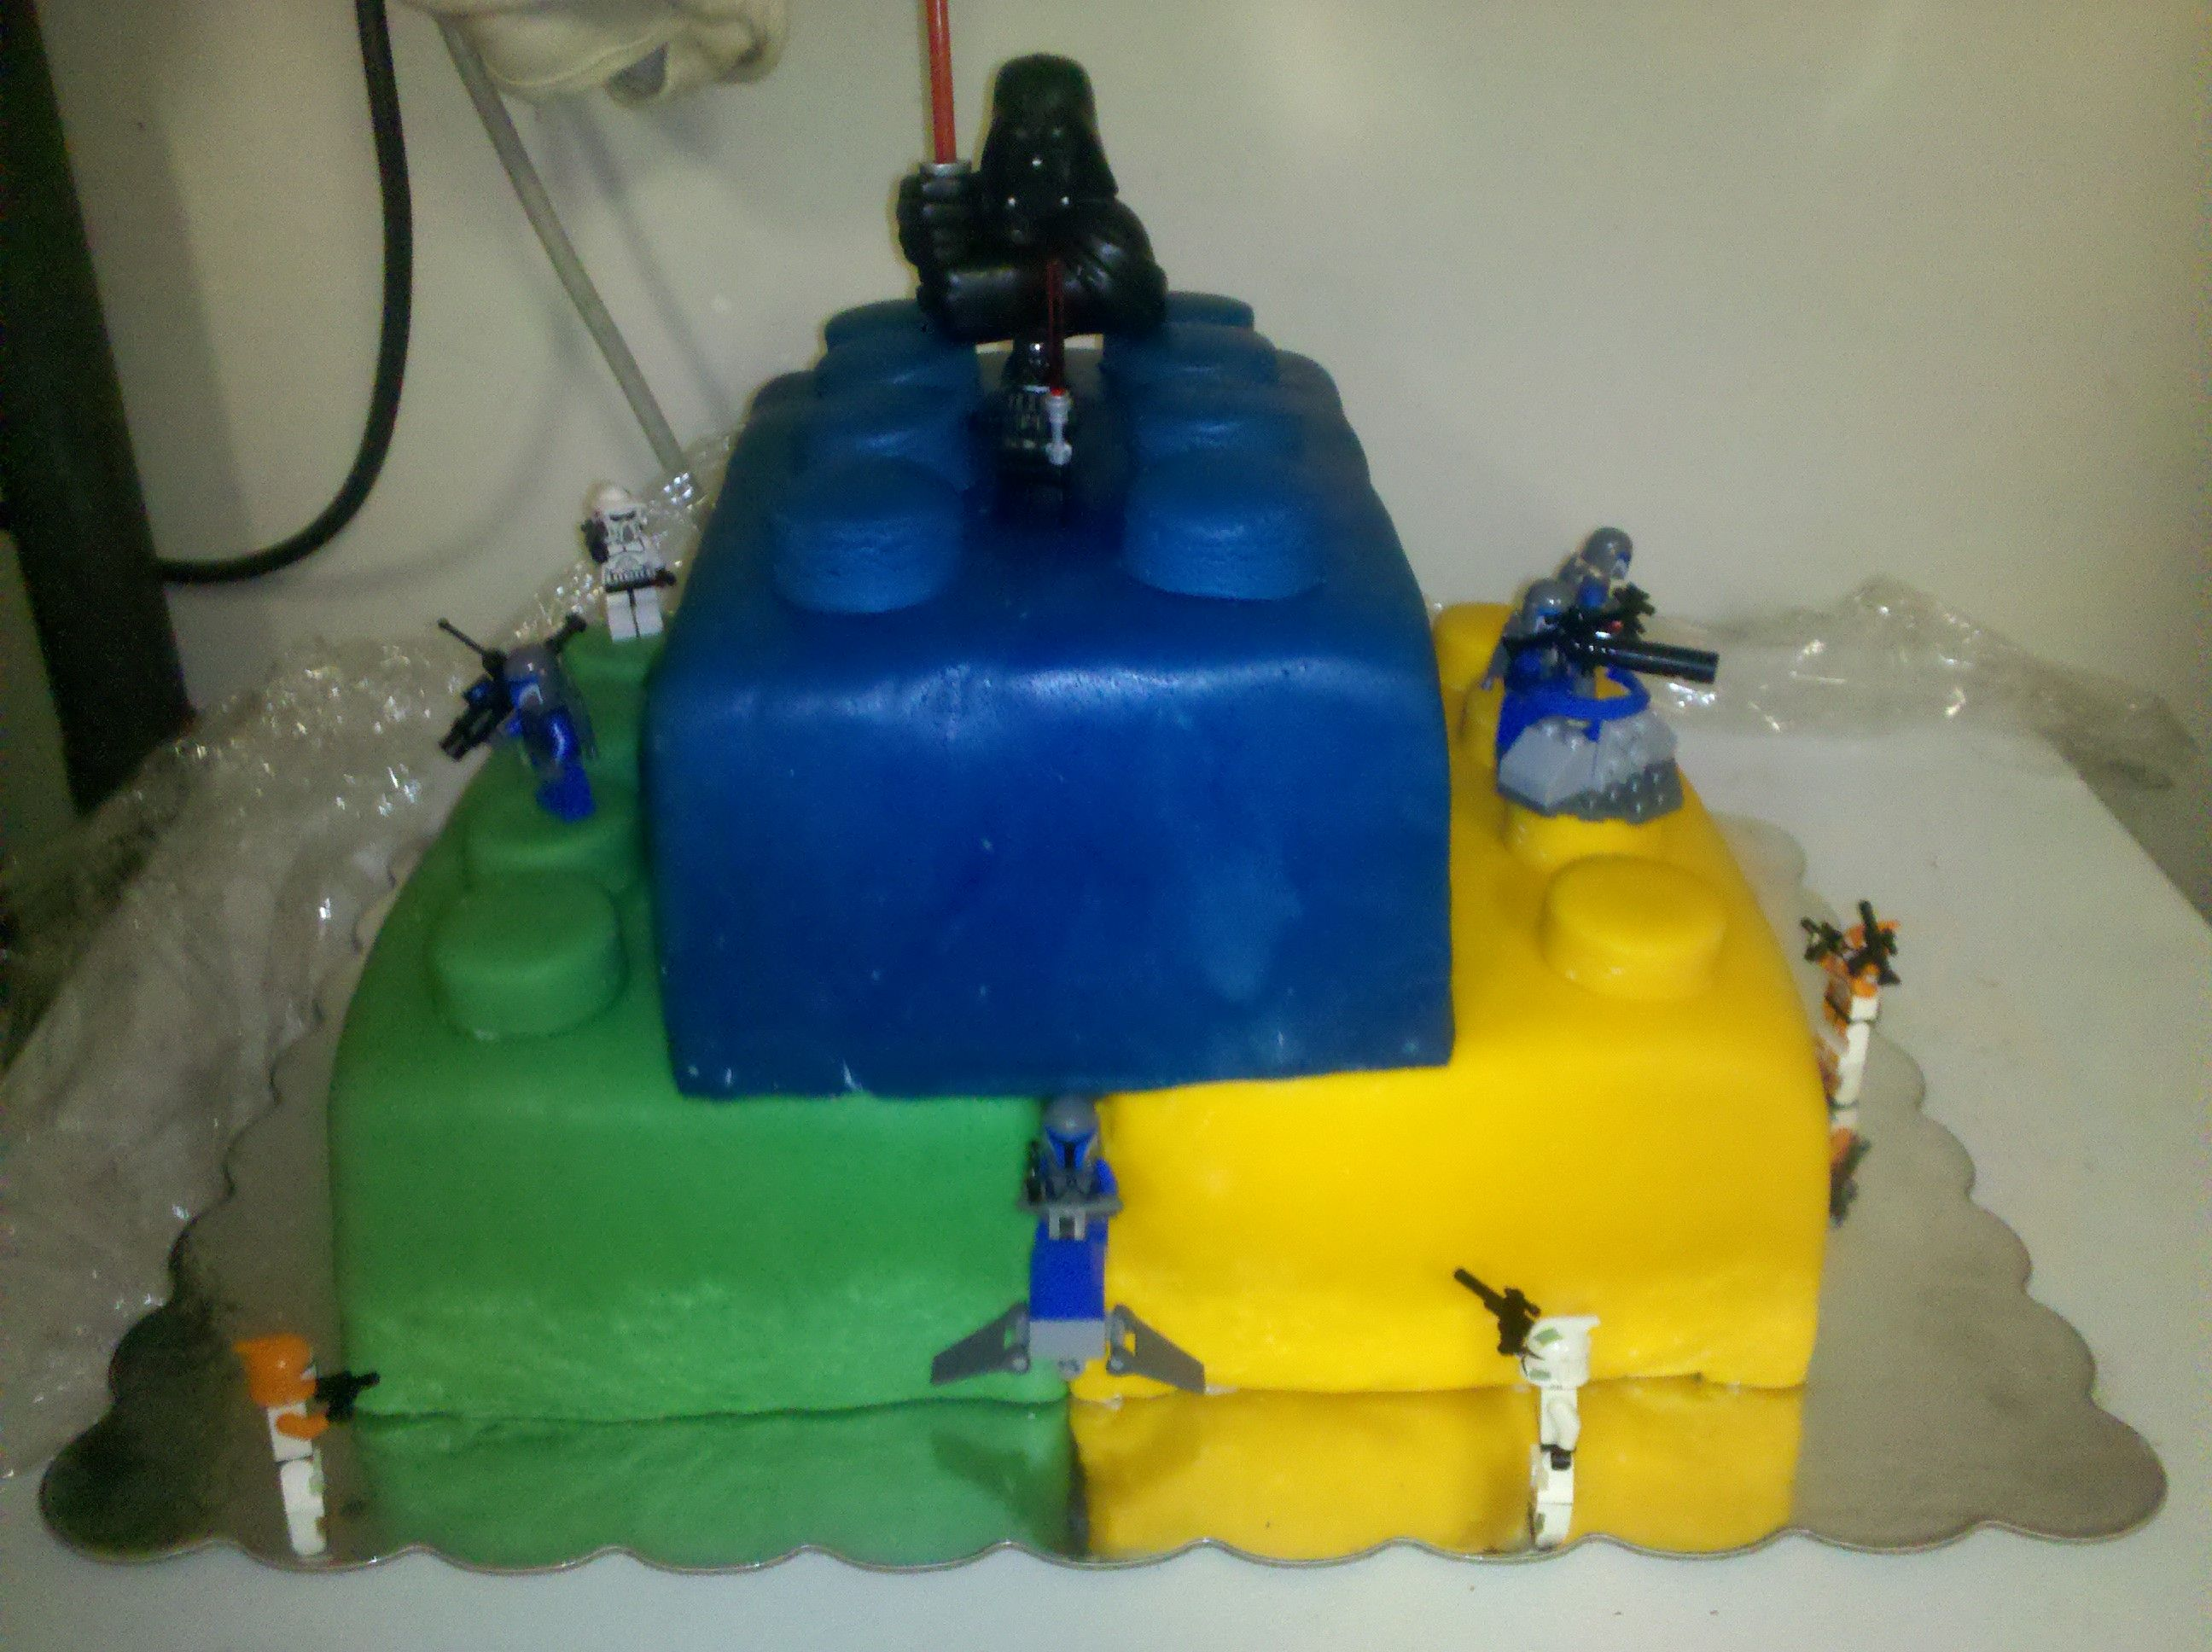 Ryland's 5th Birthday Cake! Big thanks to Captain Rex for crashing our party from a galaxy far, far away!